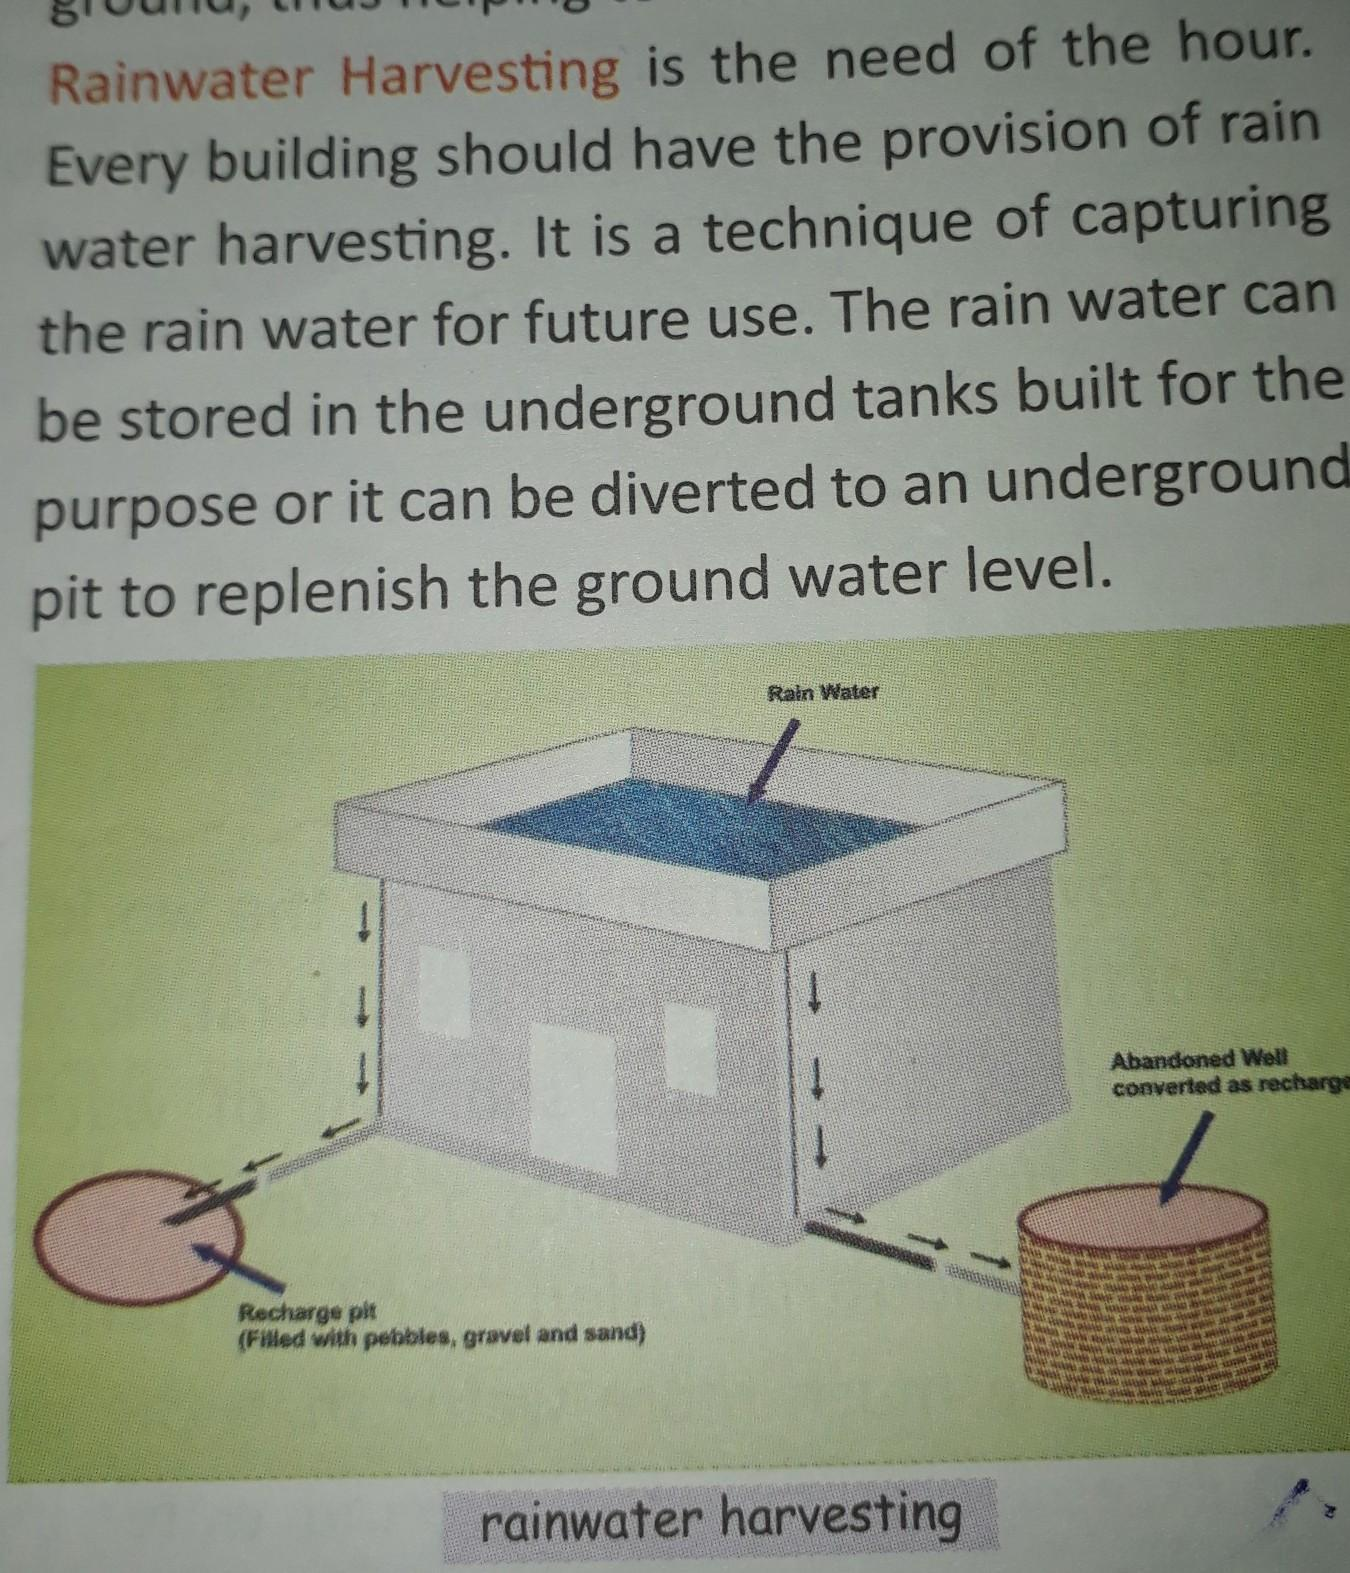 What is rainwater harvesting? Explain and draw a diagram